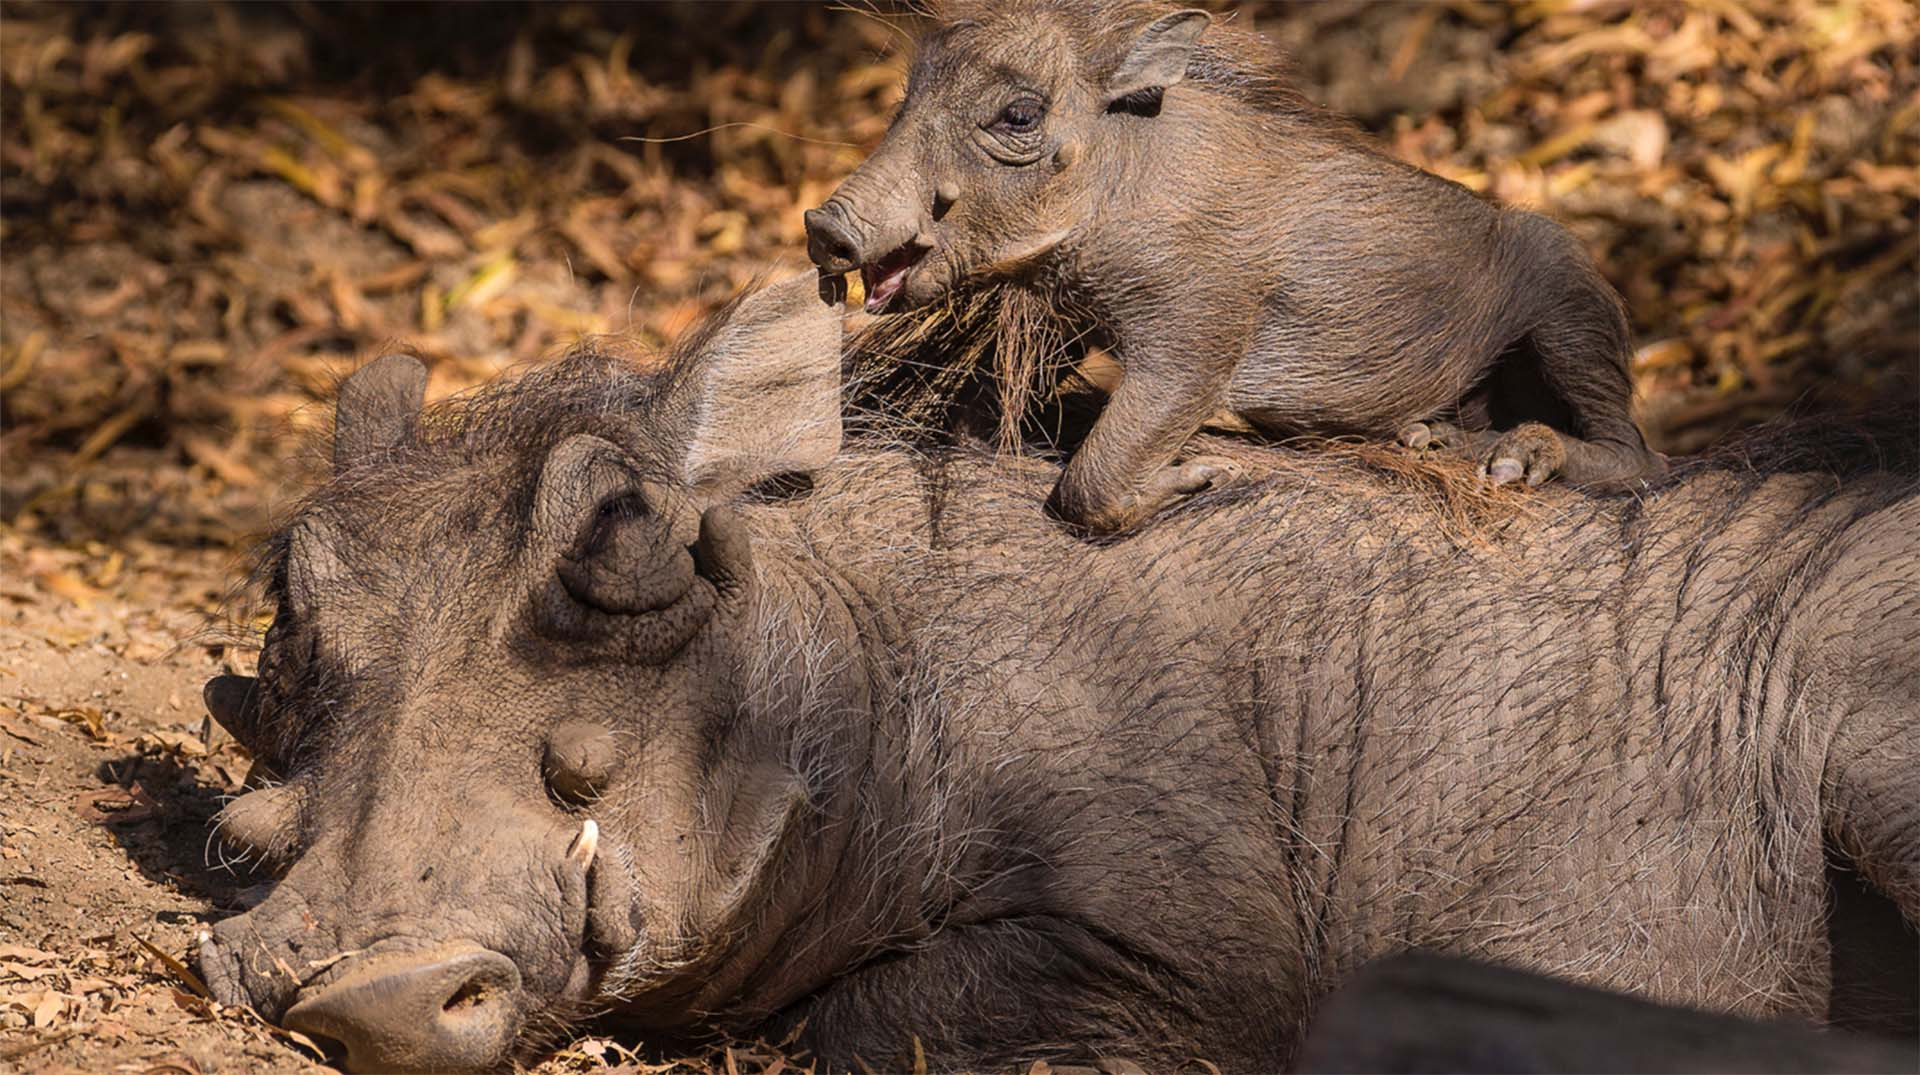 A five-week-old southern warthog piglet climbs on its mother's back.